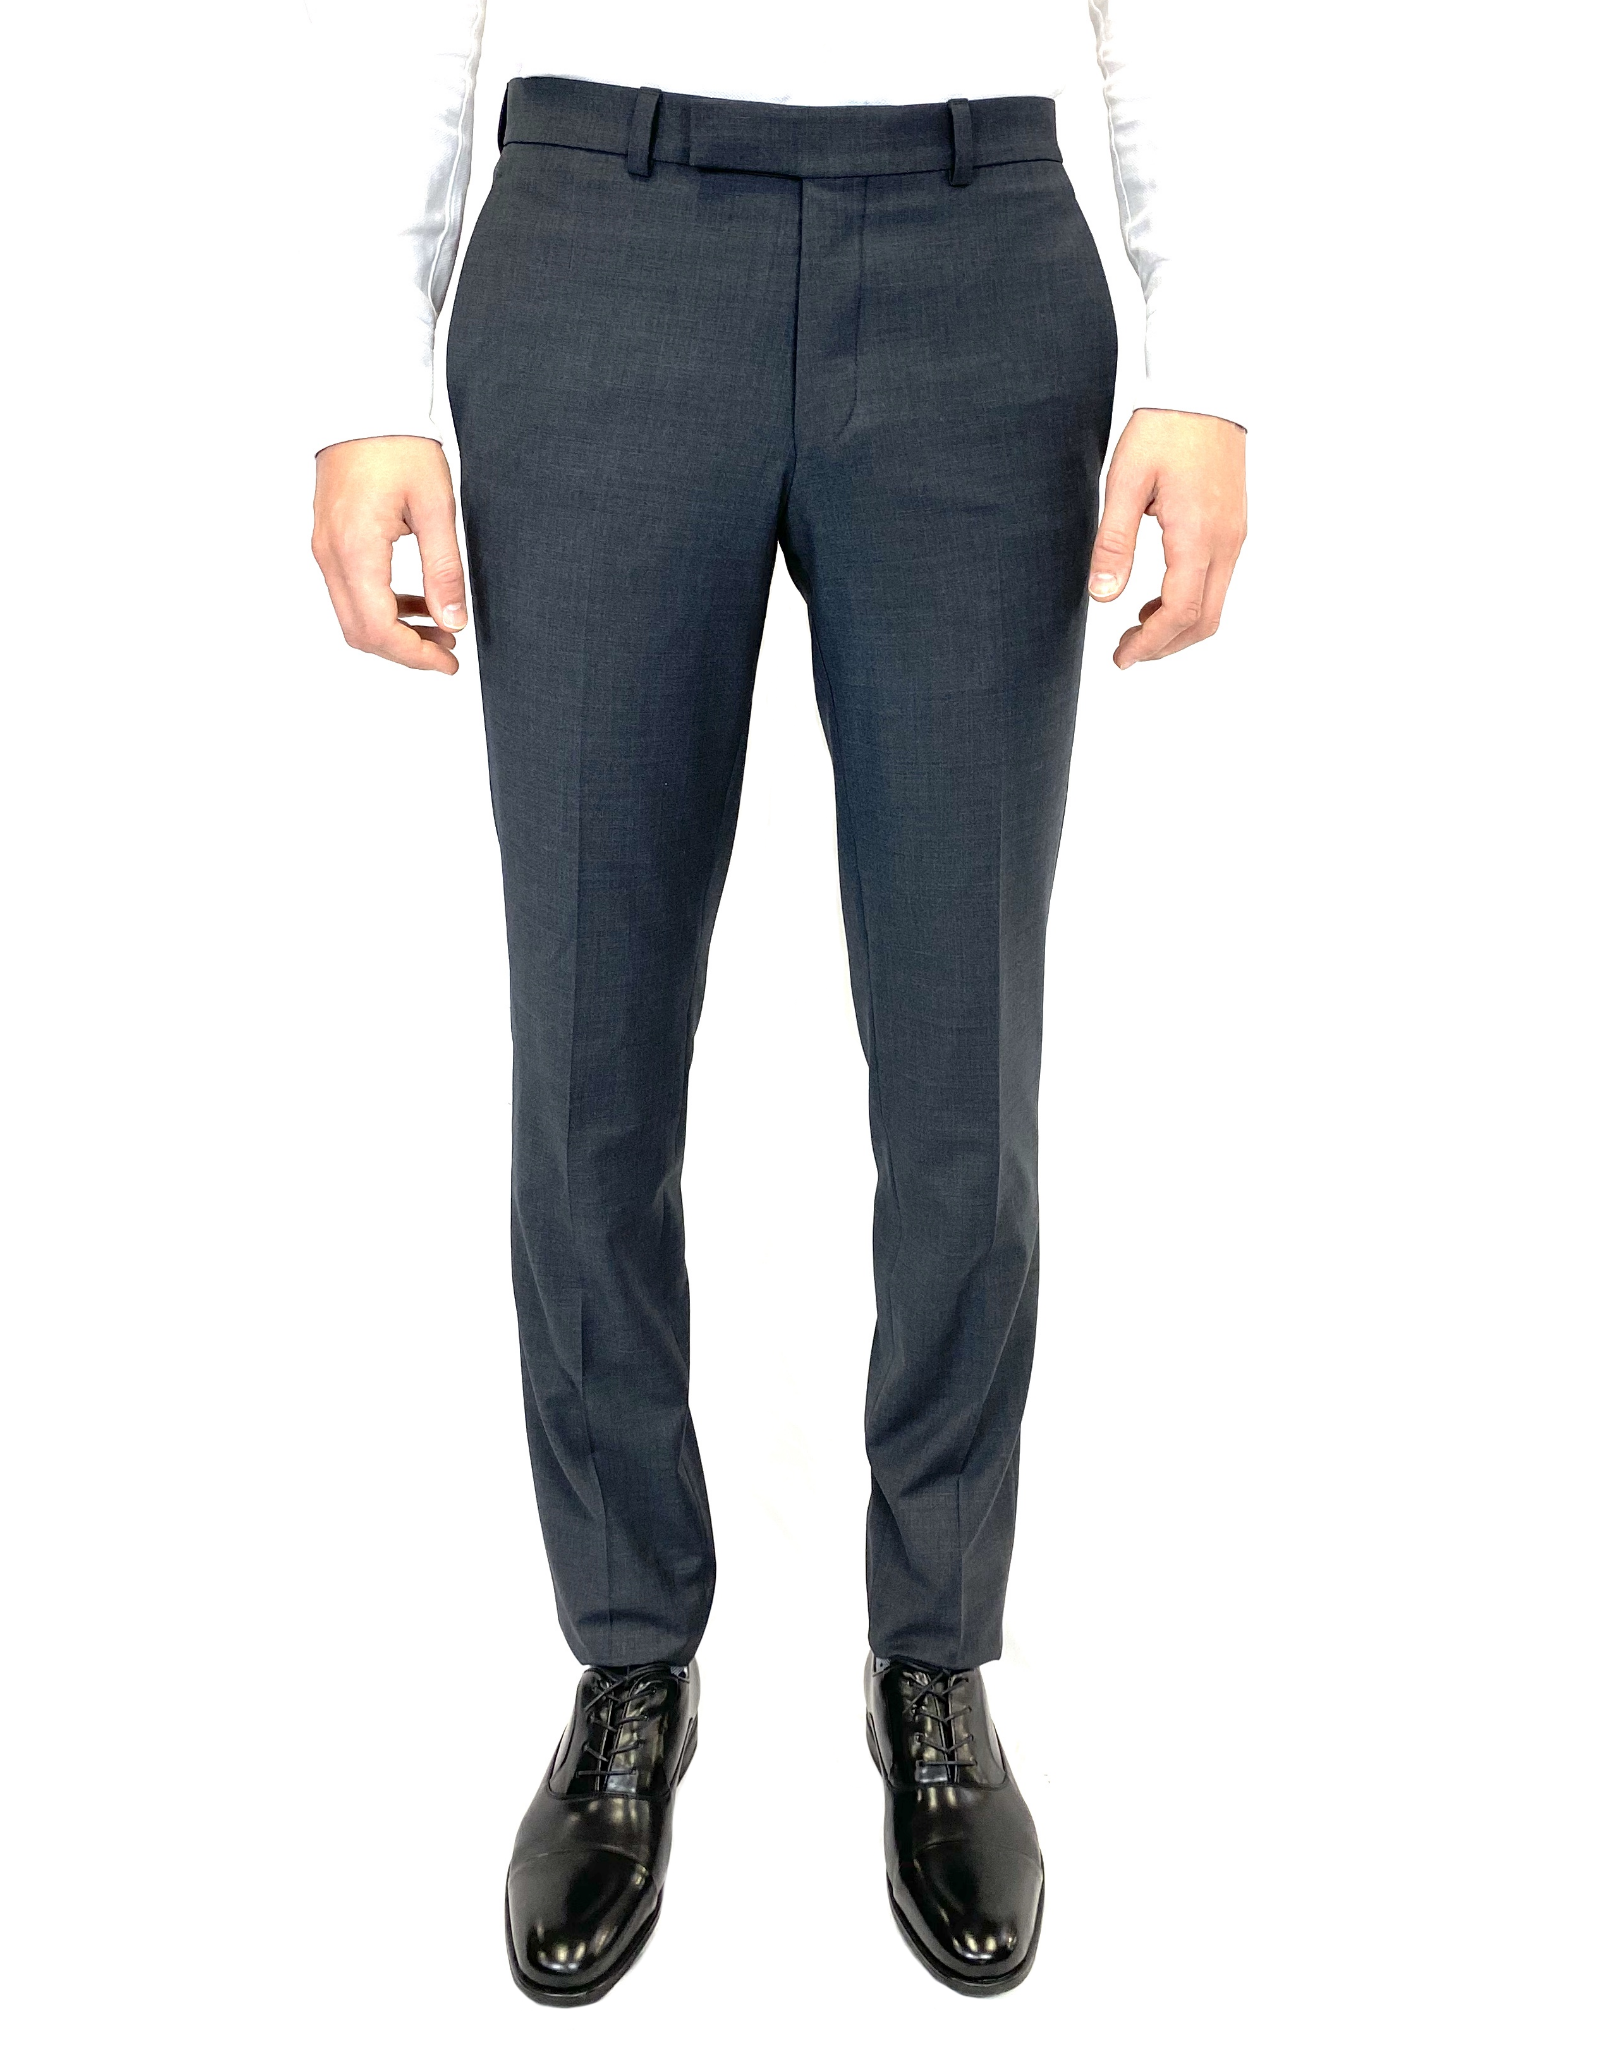 Riviera Slim Fit Yuri Dress Pant in Charcoal